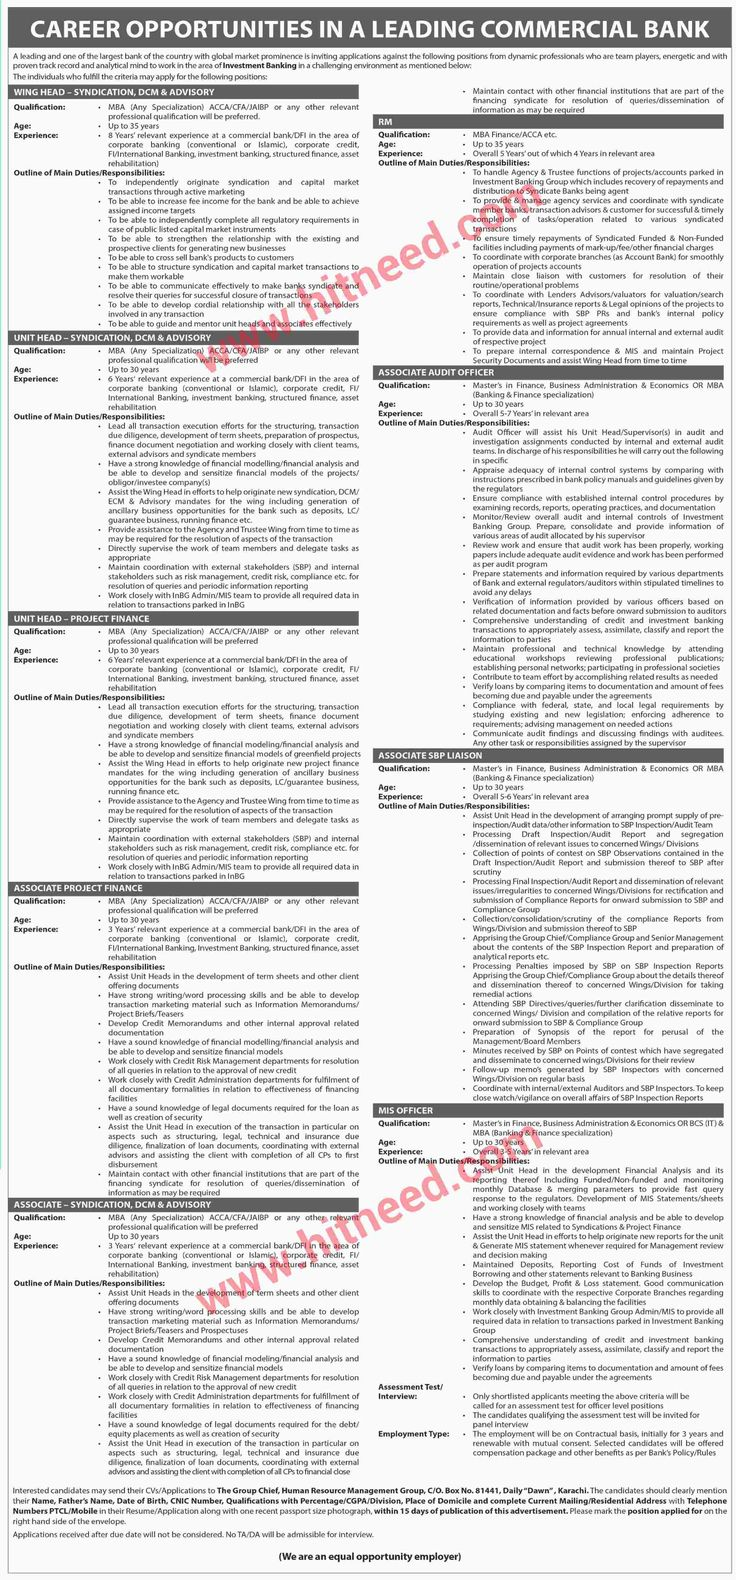 Leading commercial bank jobs wing head rm unit head and other jobs